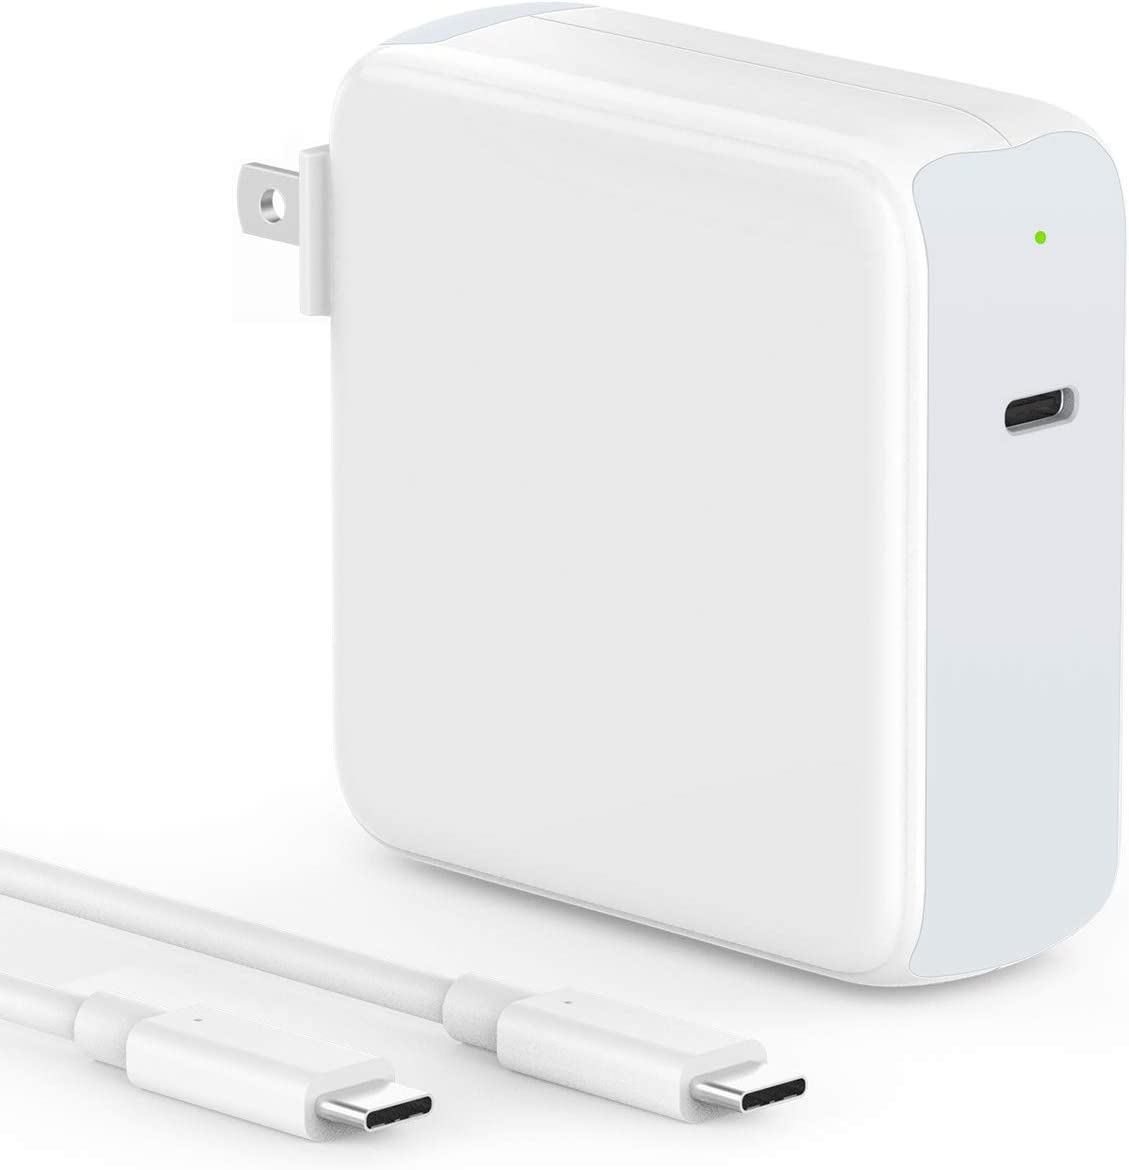 SZPOWER 96W USB C Charger Power Adapter for MacBook Pro 16, 15, 13 inch, New MacBook Air 13 inch 2020/2019/2018, iPad Pro 12.9, 11, Thunderbolt 3 Power Supply, Type C, LED, 6.6ft 5A USB C to C Cable